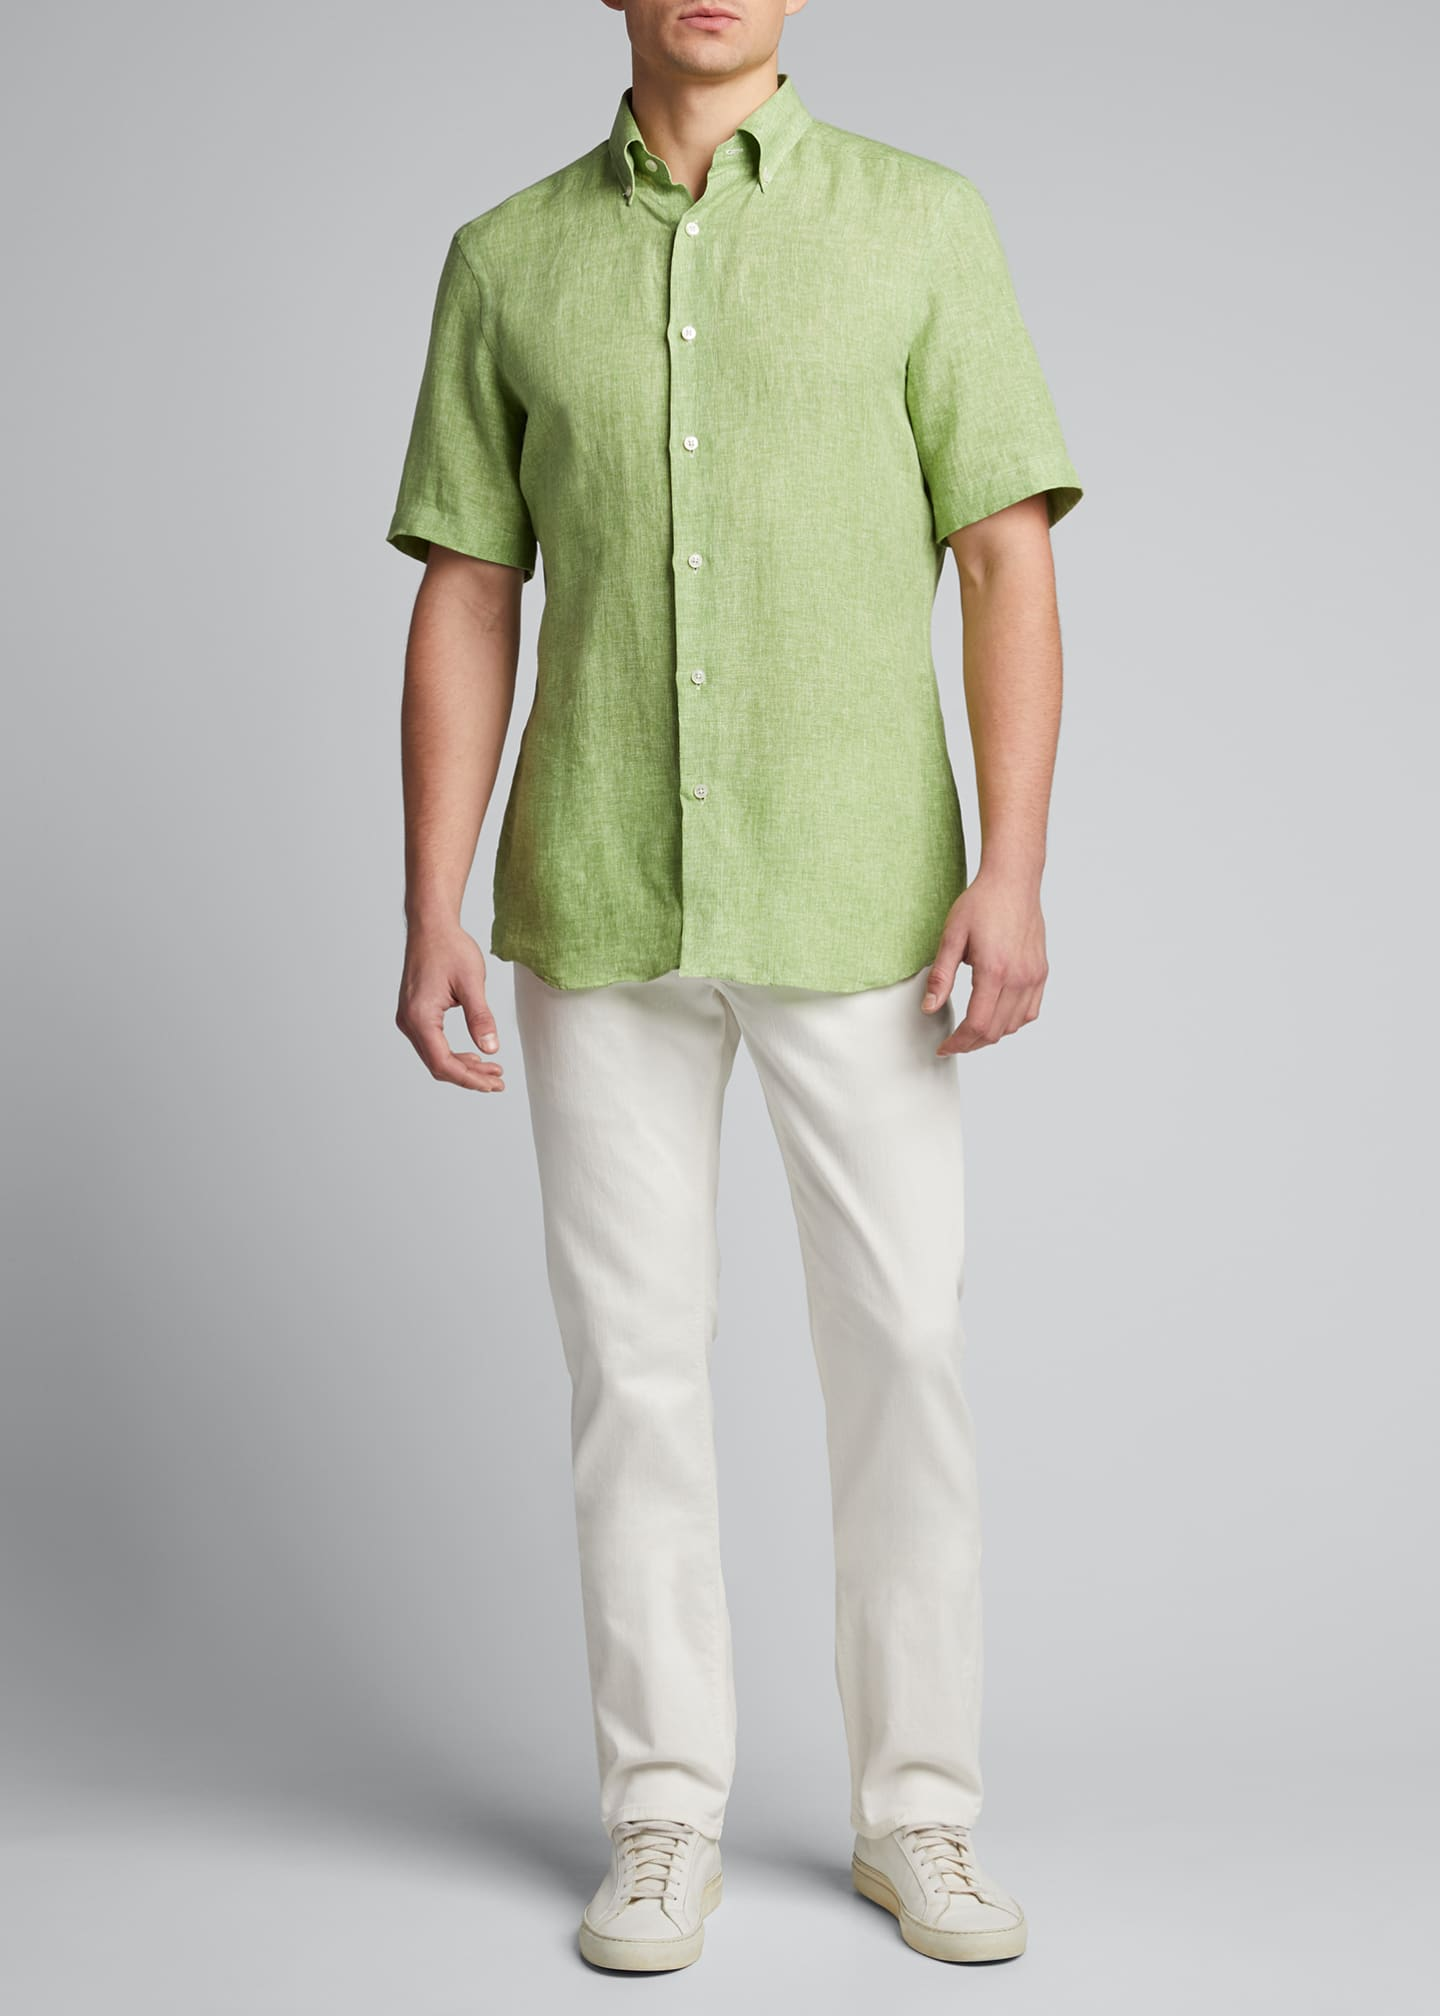 Image 1 of 5: Men's Solid Short-Sleeve Yarn-Dyed Sport Shirt